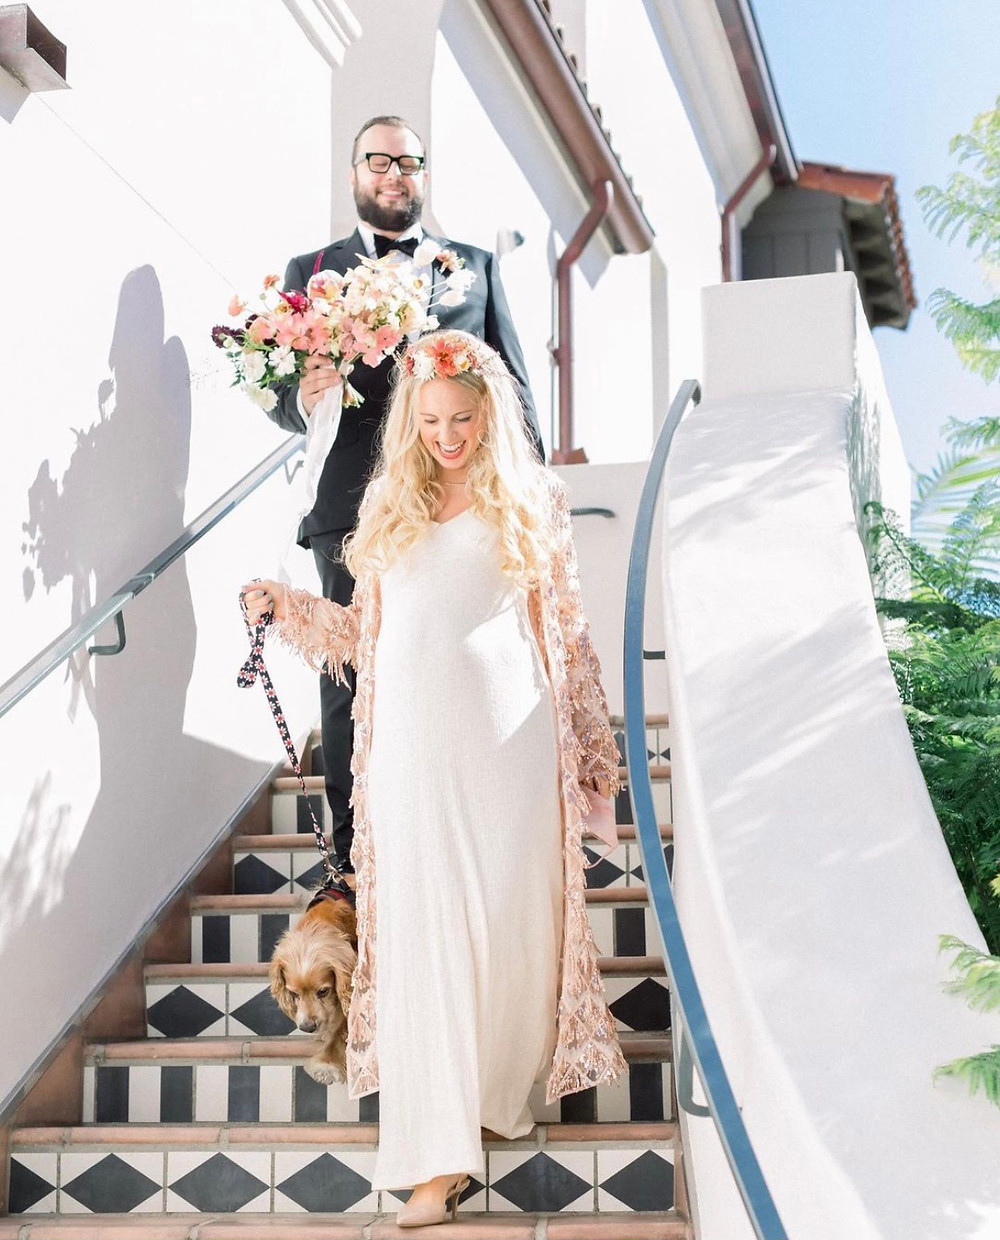 A newlywed couple walking down the stairs with their dog